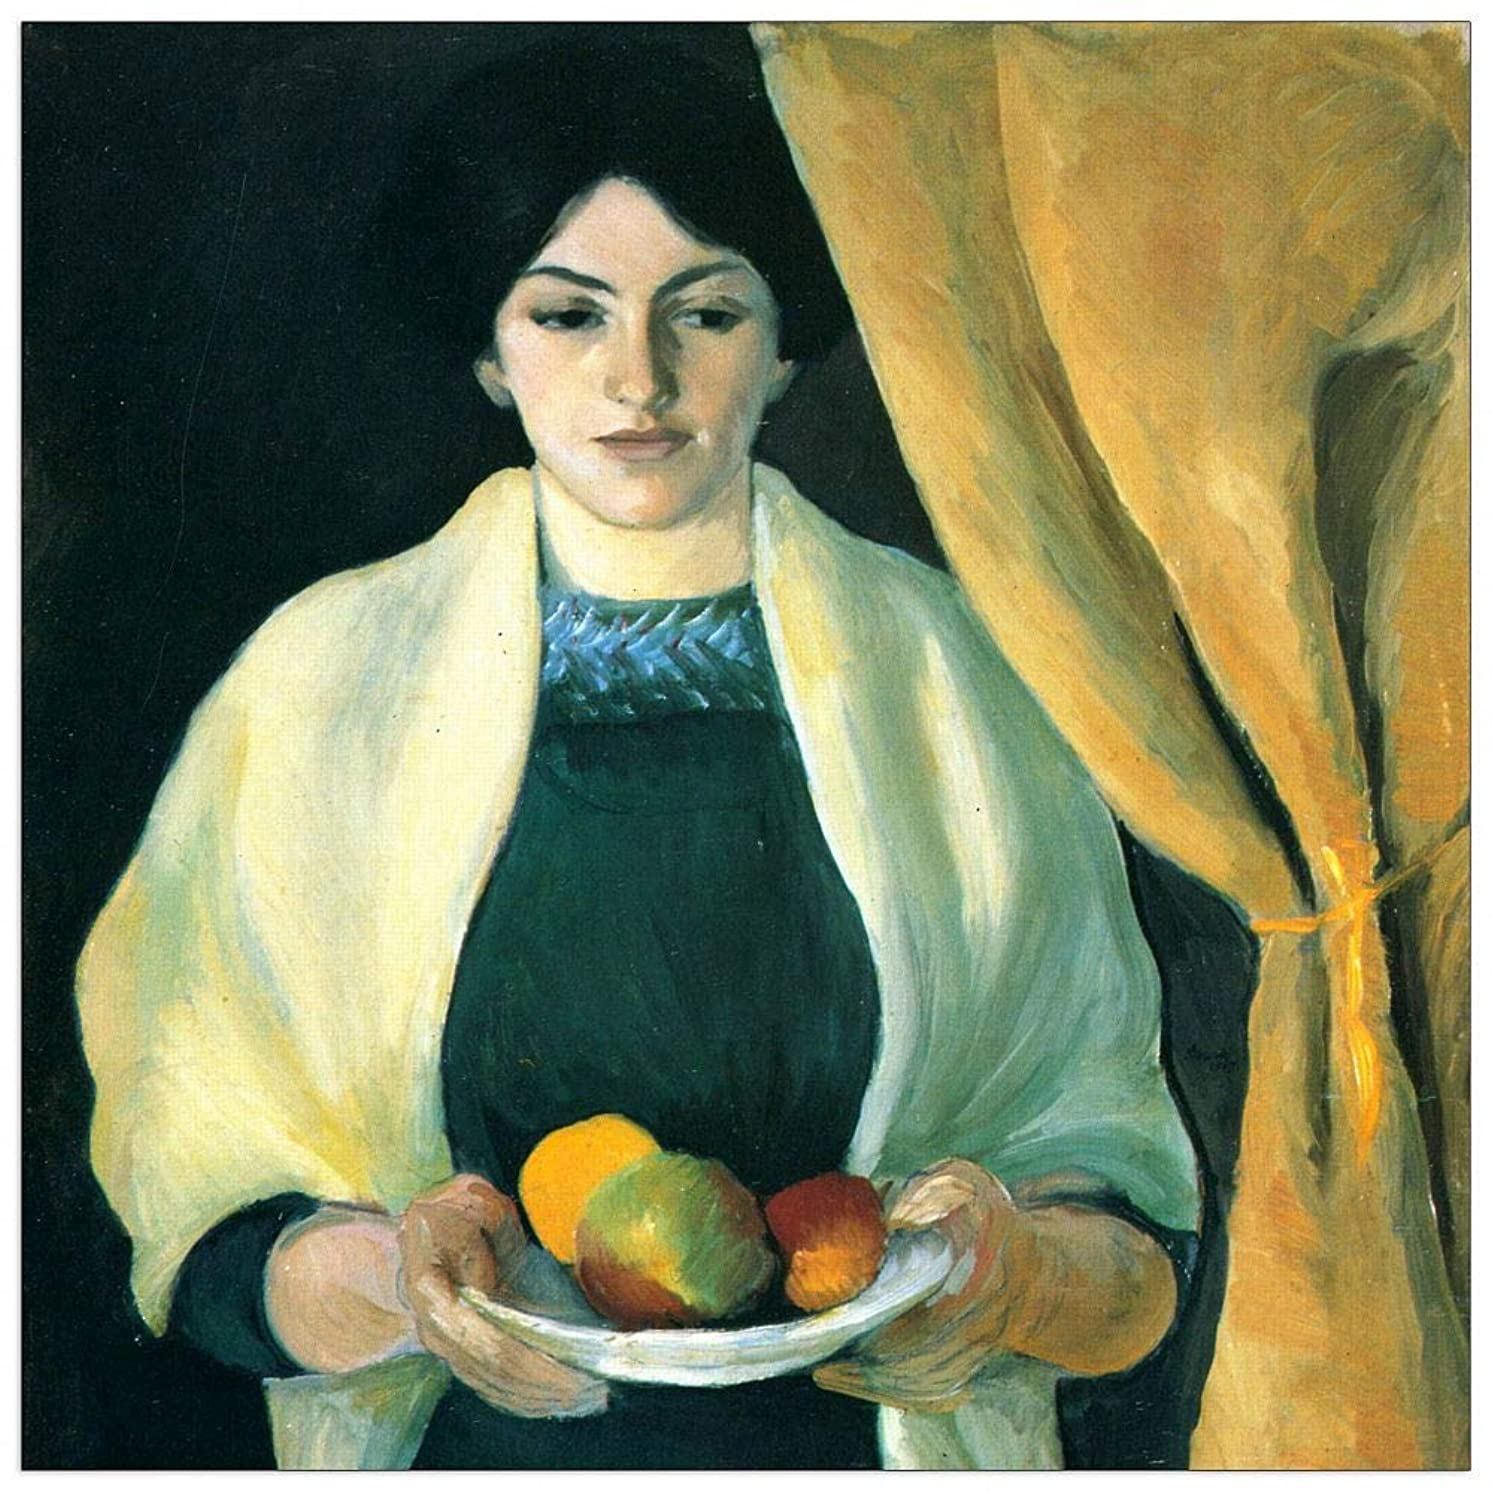 ArtPlaza TW91406 Macke August Apples (Portrait of The Wife of The Artist) Decorative Panel 15.5x15.5 Inch Multicolored